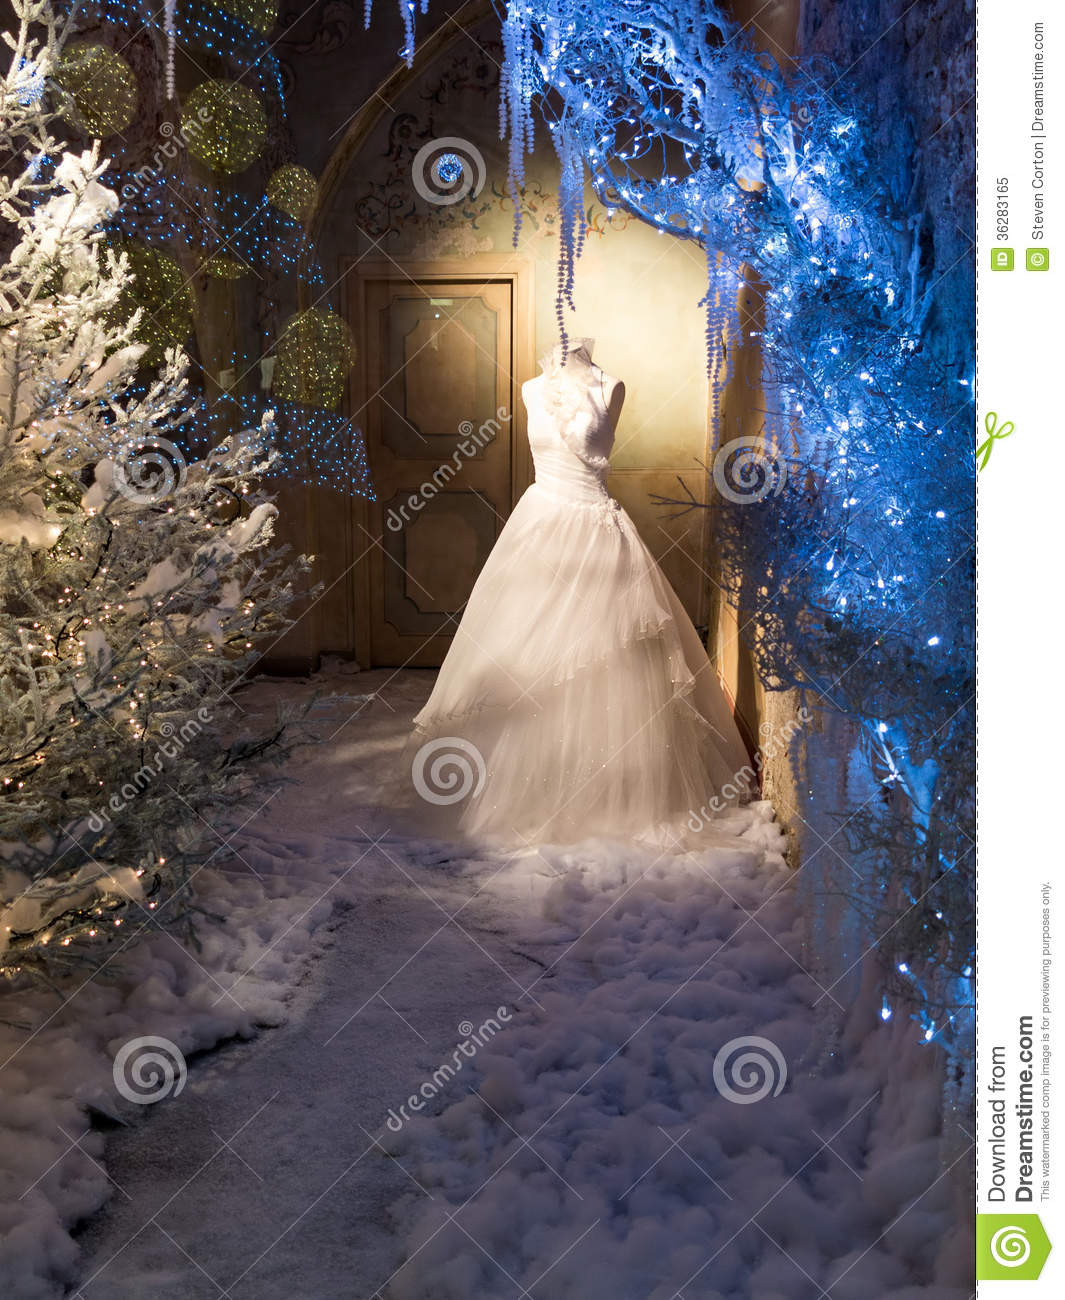 Wedding Gown Display: Winter Display Of Wedding Dress Stock Image